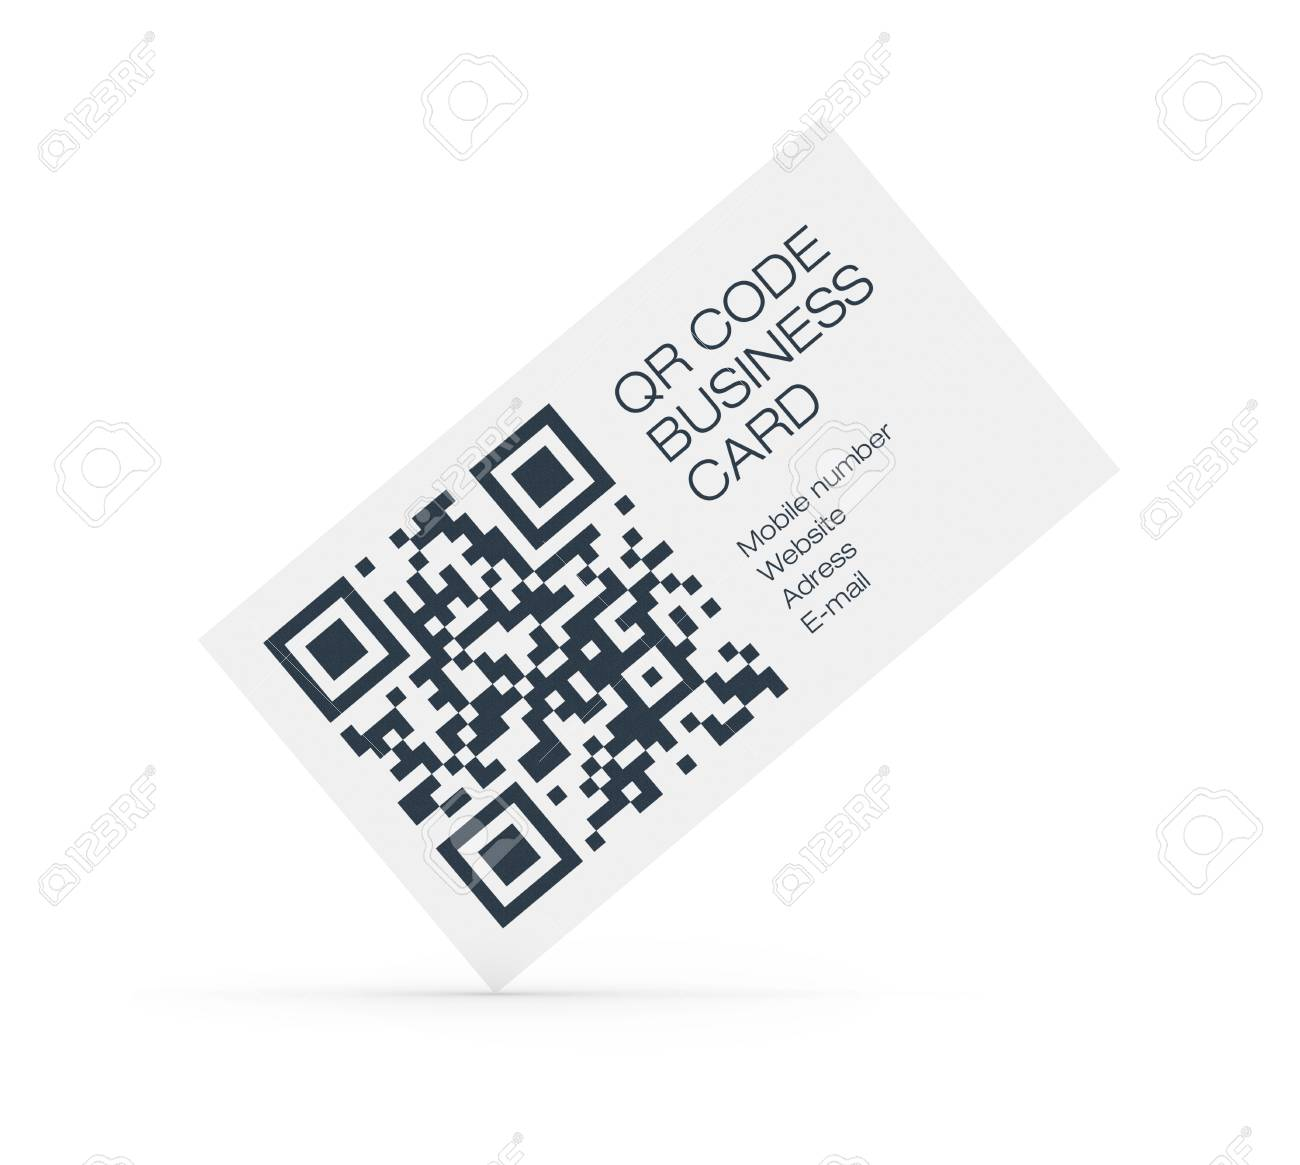 Qr business cards idealstalist qr business cards reheart Choice Image